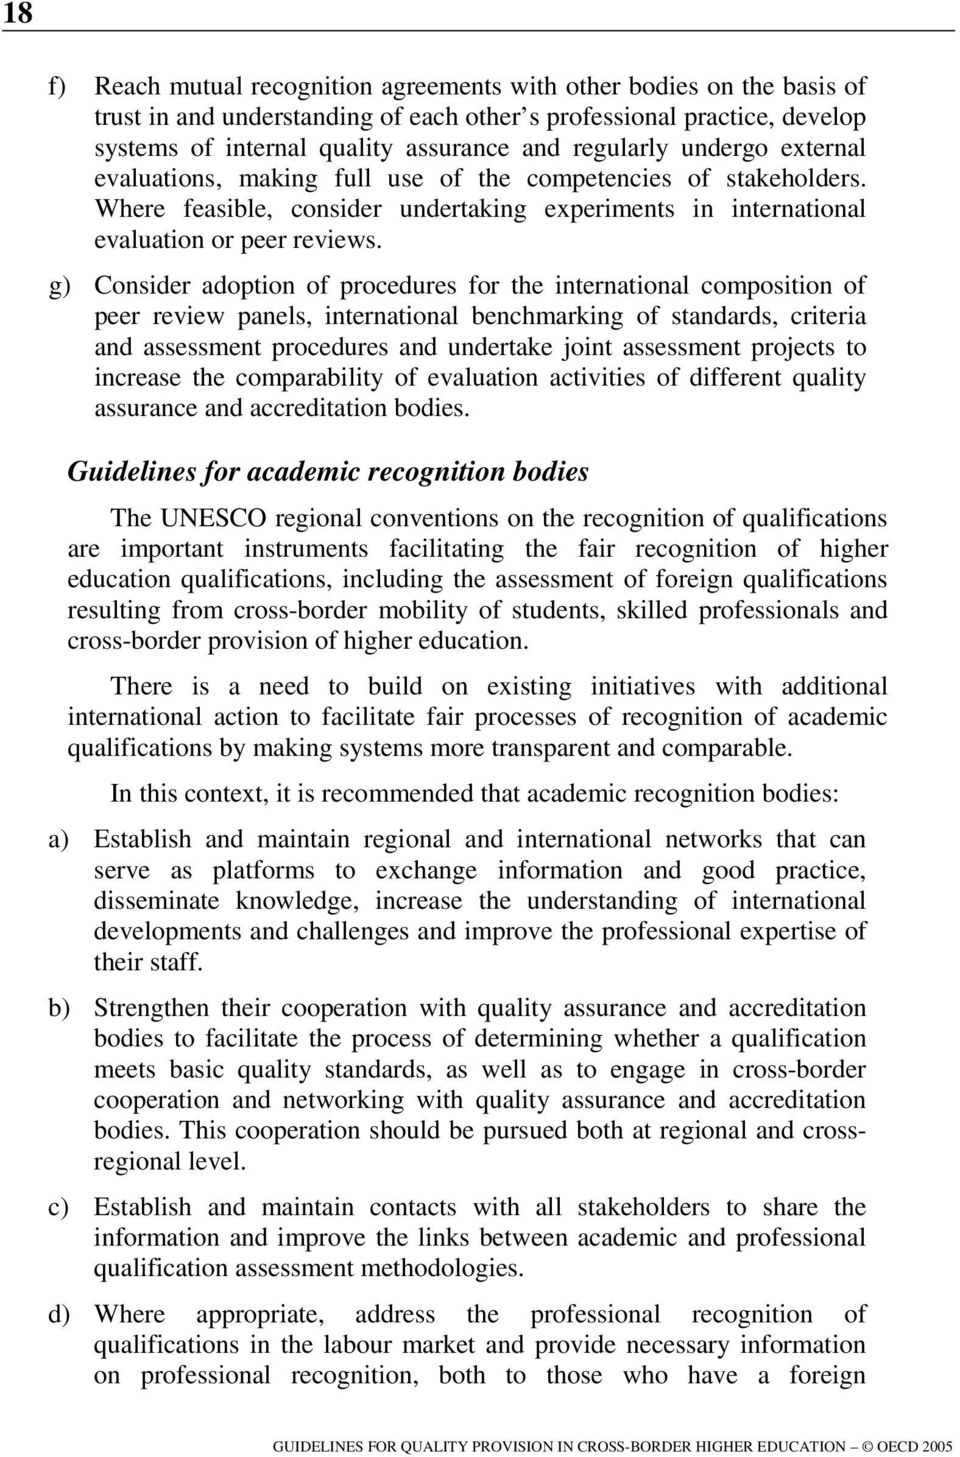 g) Consider adoption of procedures for the international composition of peer review panels, international benchmarking of standards, criteria and assessment procedures and undertake joint assessment